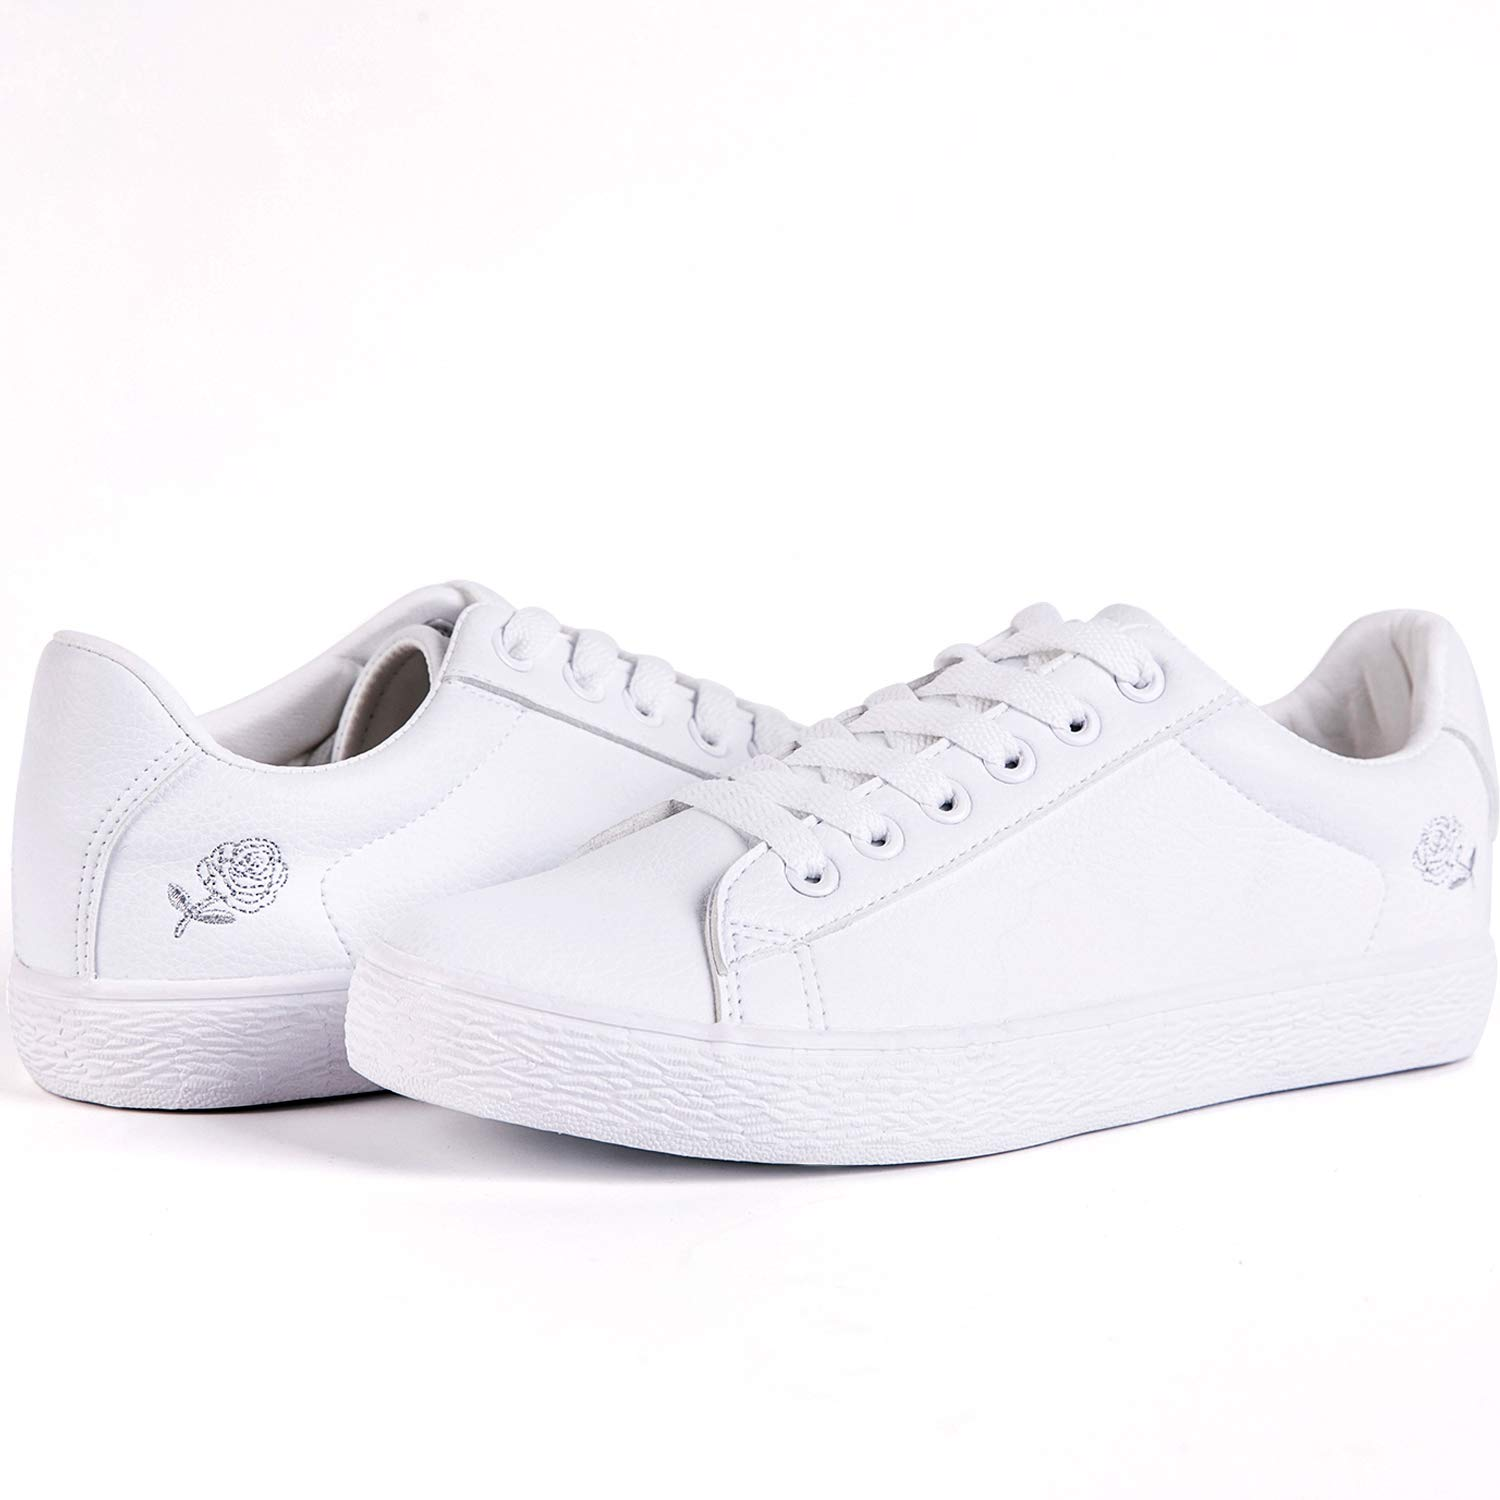 Synthetic Leather - White with Sliver pink Lantina Women's Low Top Fashion Sneakers